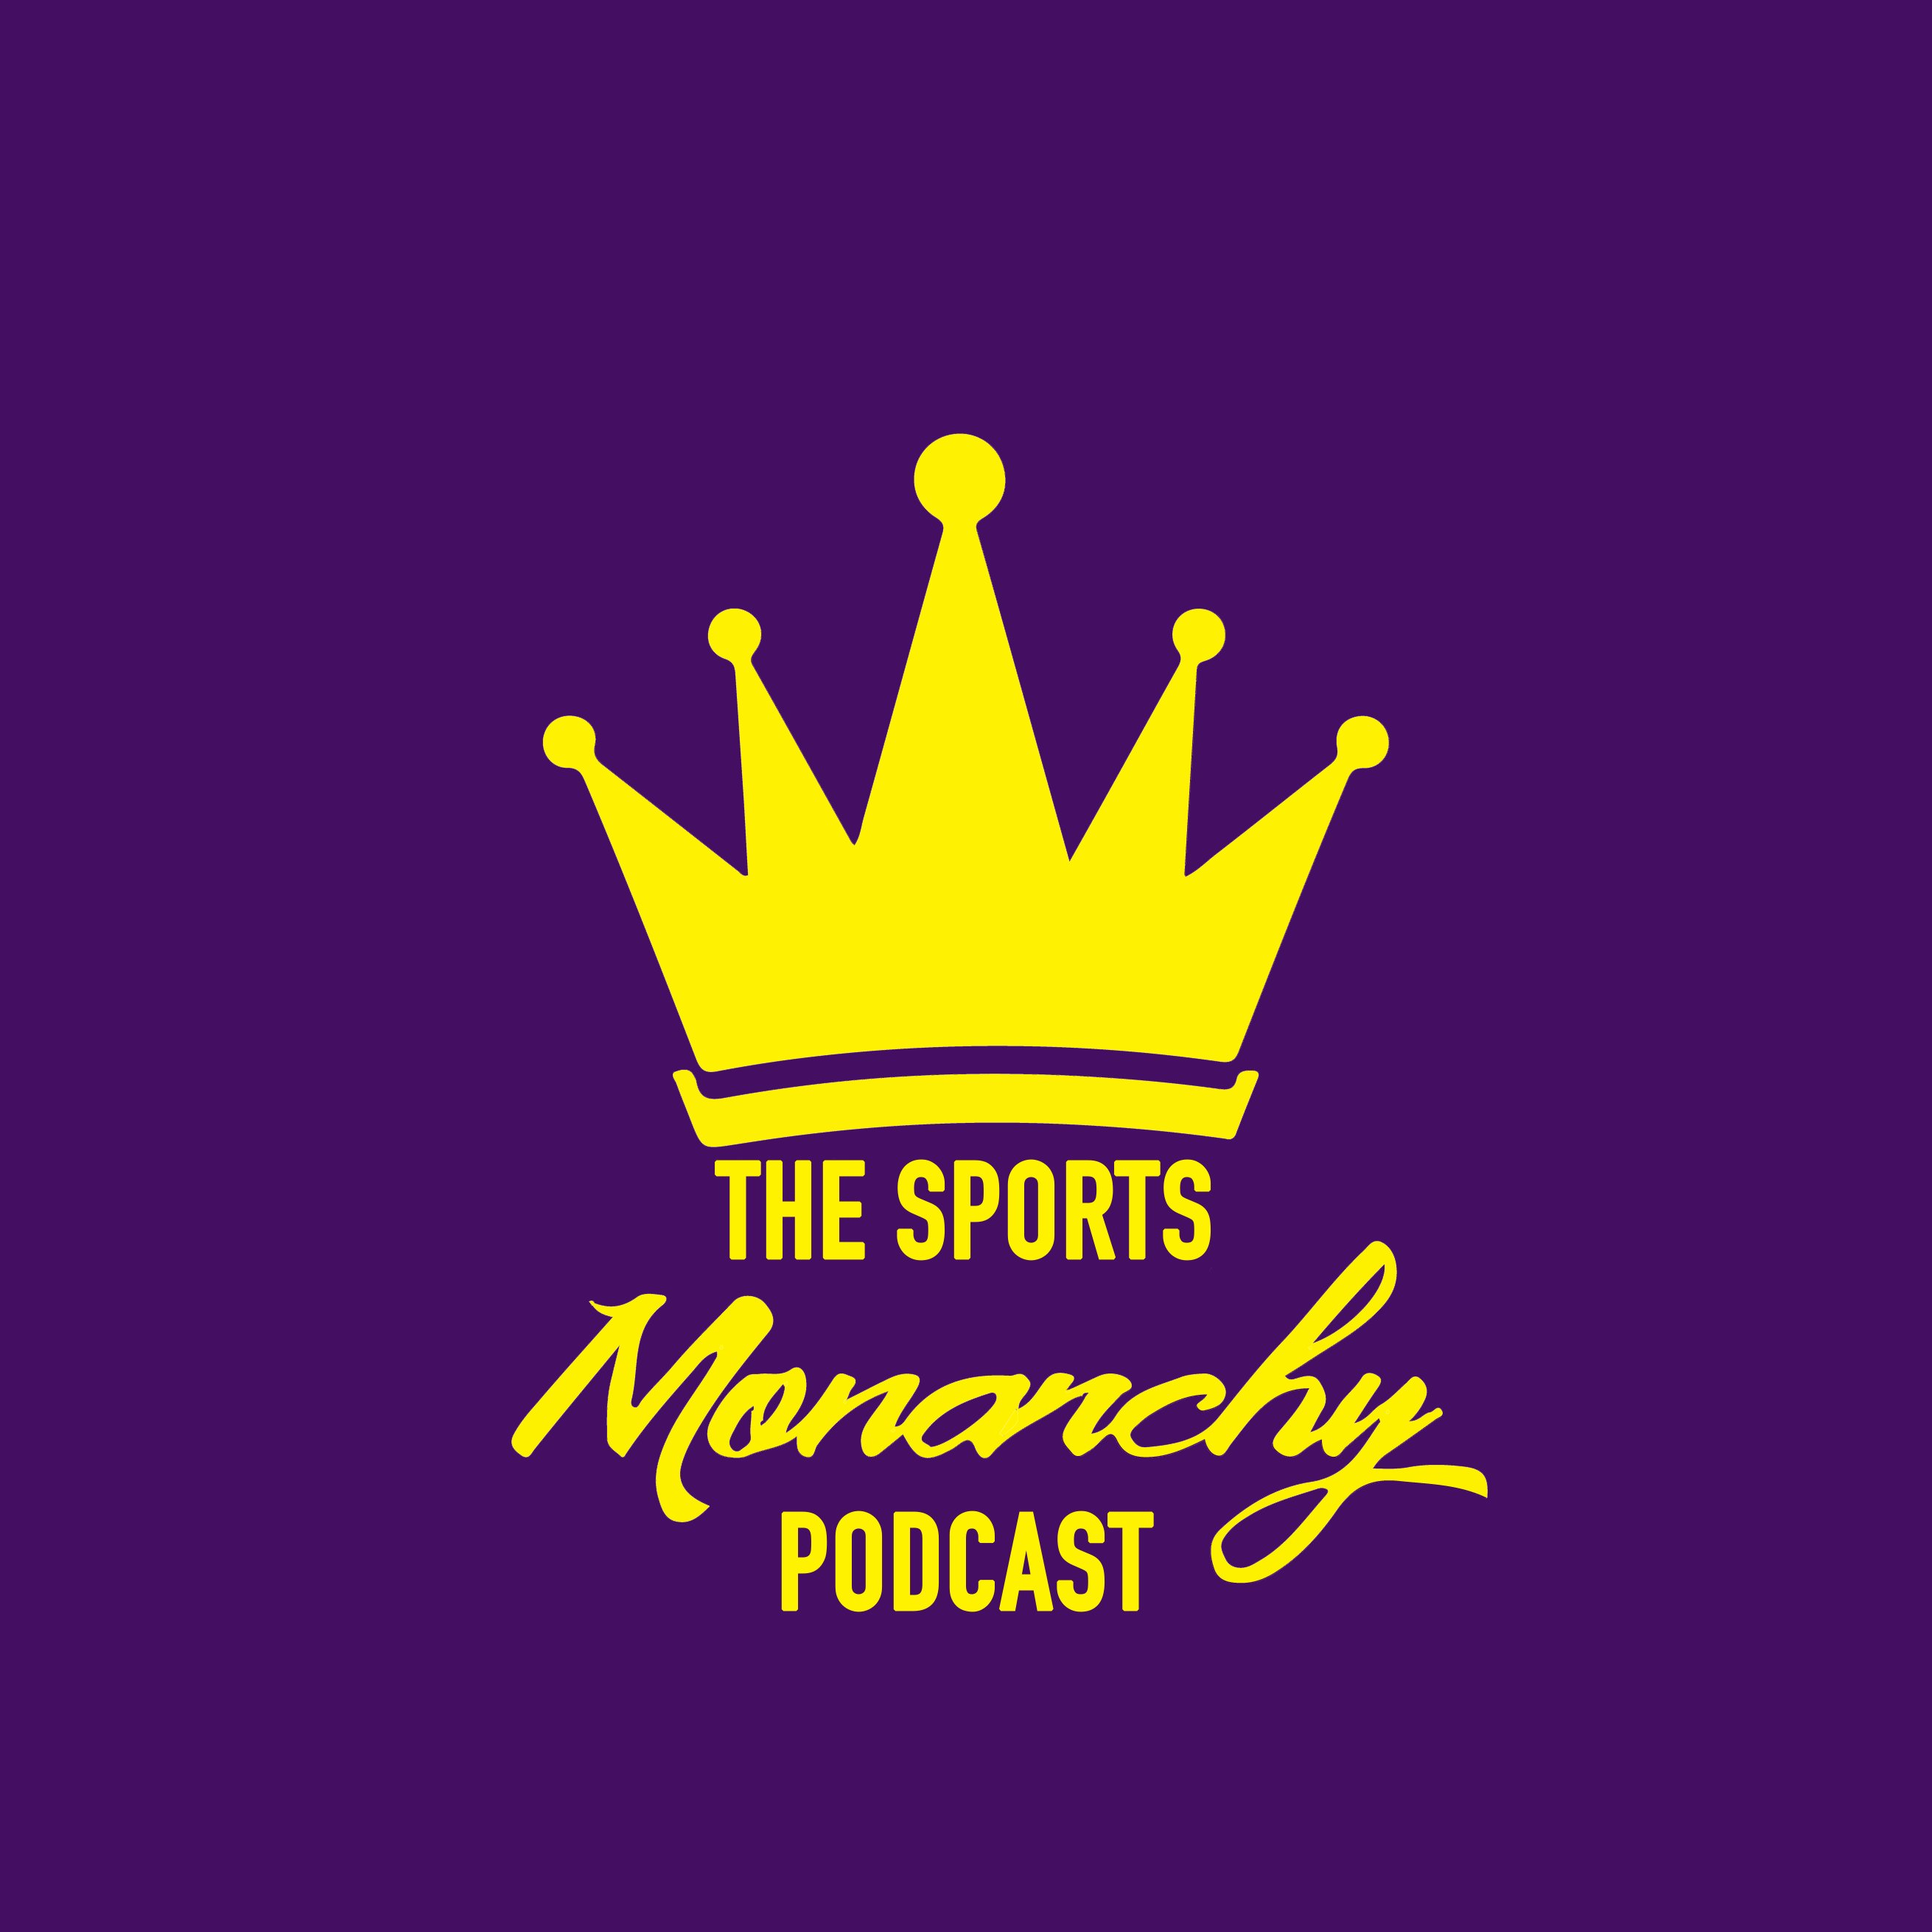 The Sports Monarchy